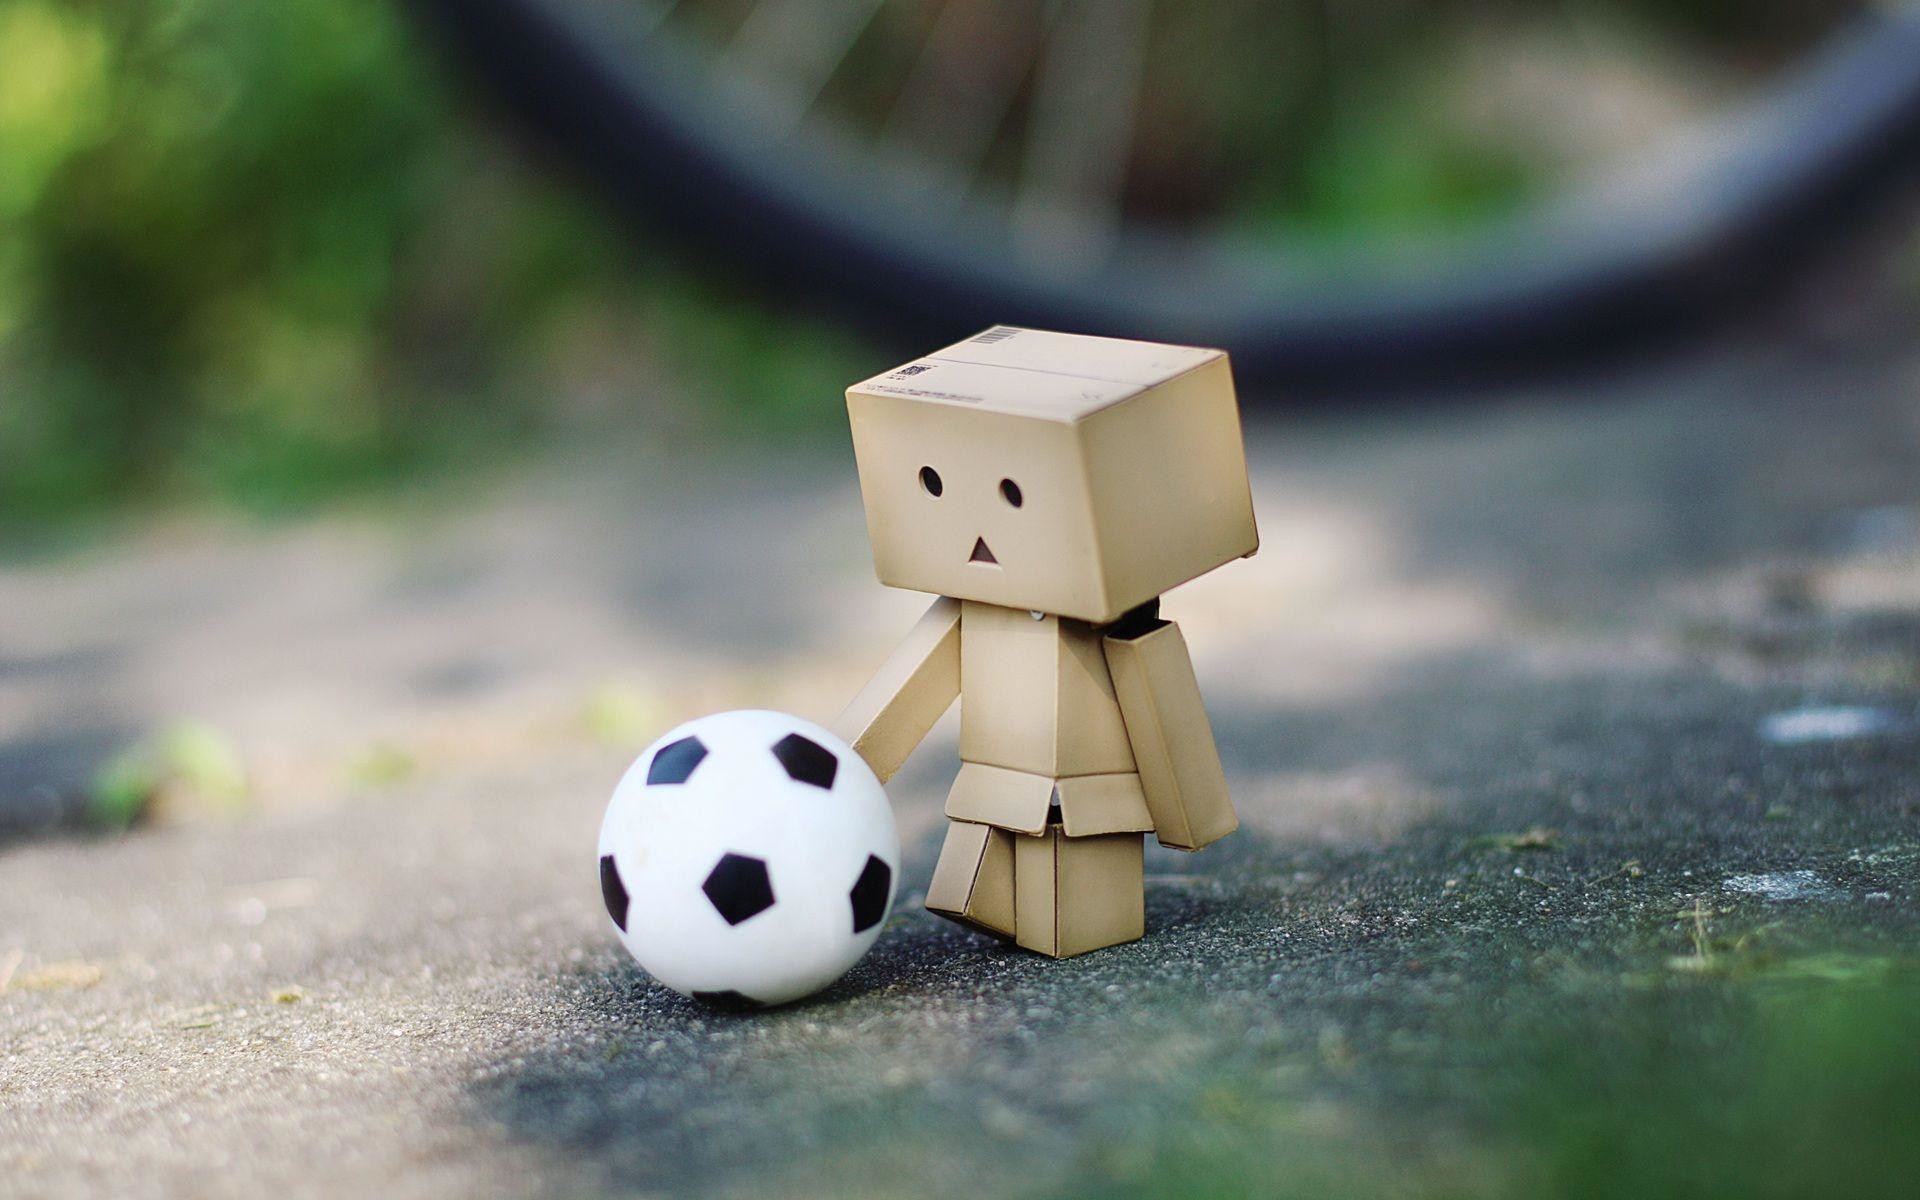 1920x1200 Cute Soccer Ball Wallpaper 1920×1200 - High Definition Wallpaper .